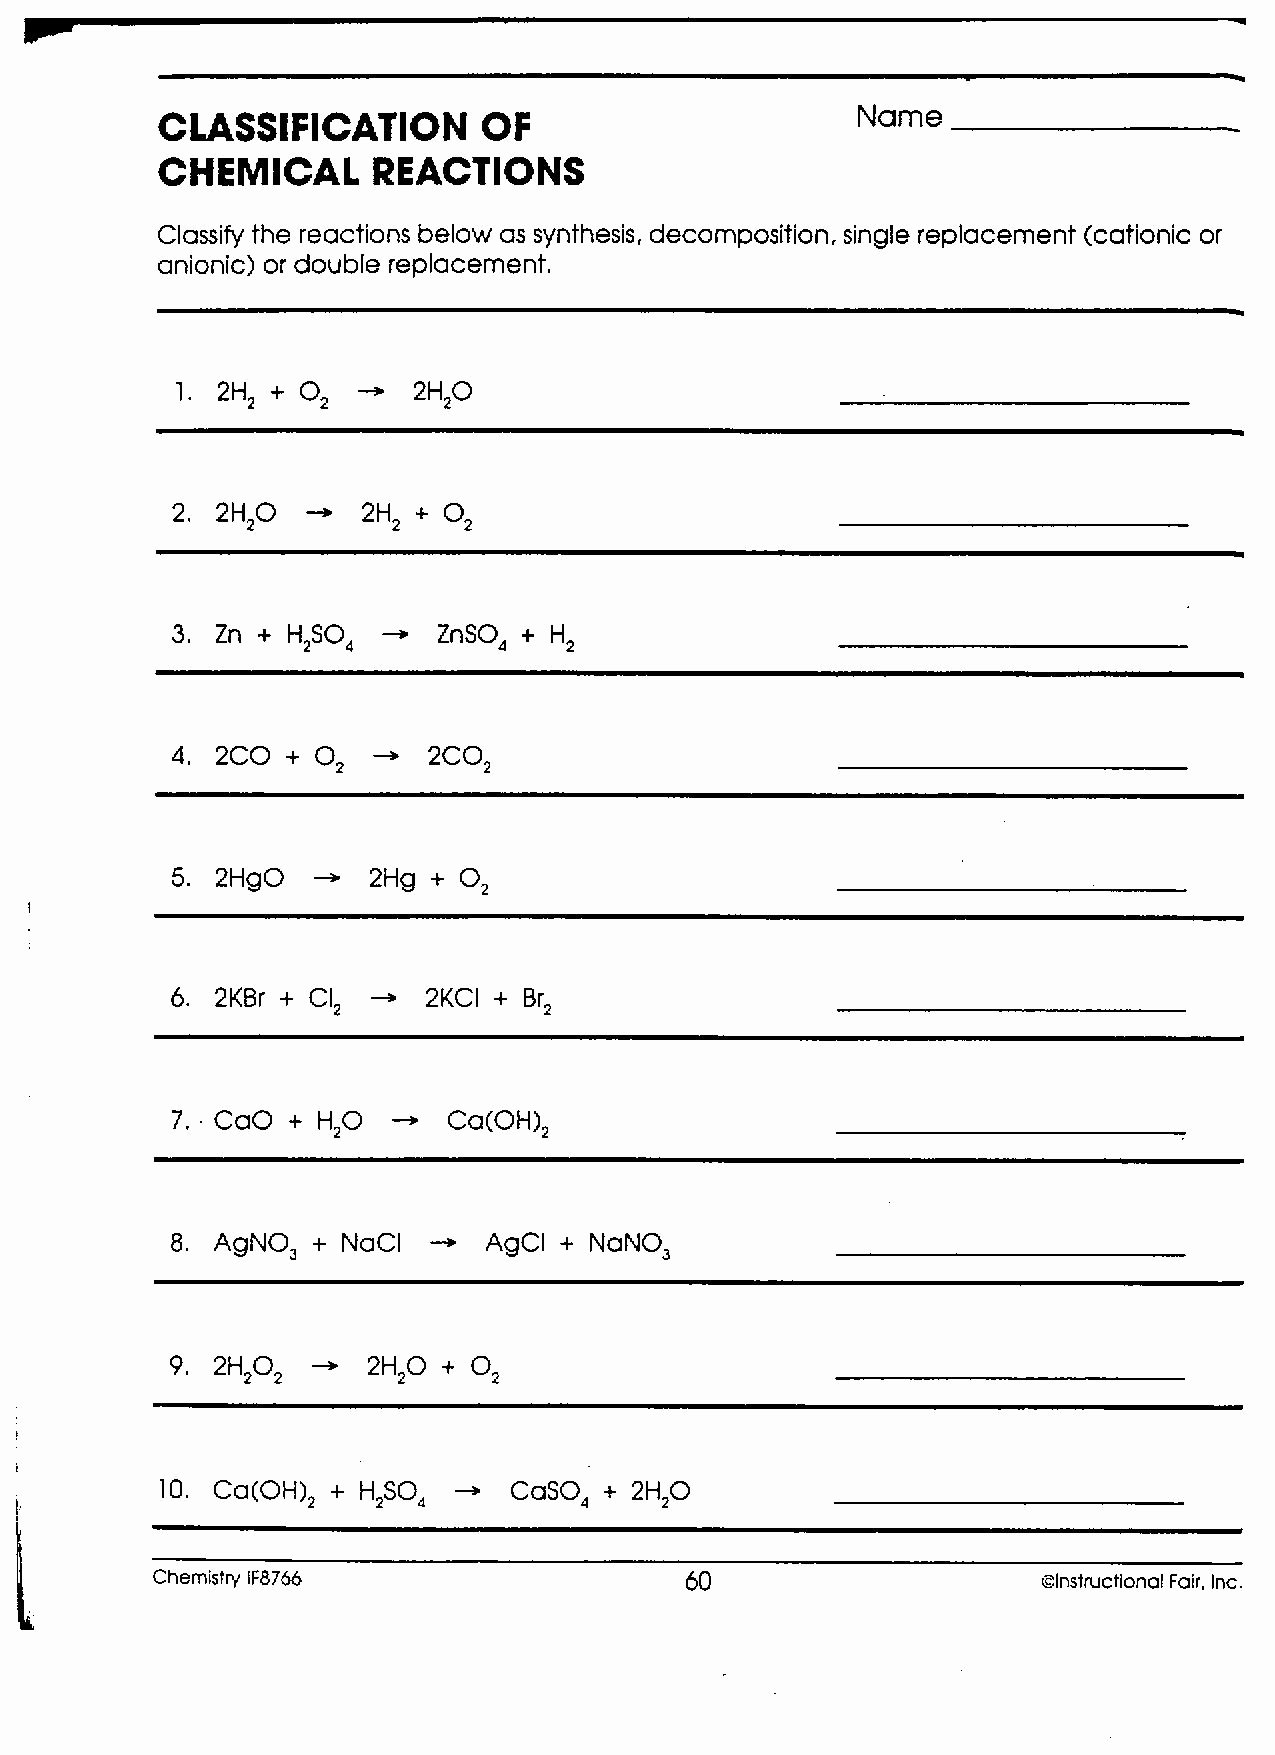 Classification Of Chemical Reactions Worksheet New Chemistry Ia Mr Phelps Big Rapids Hs